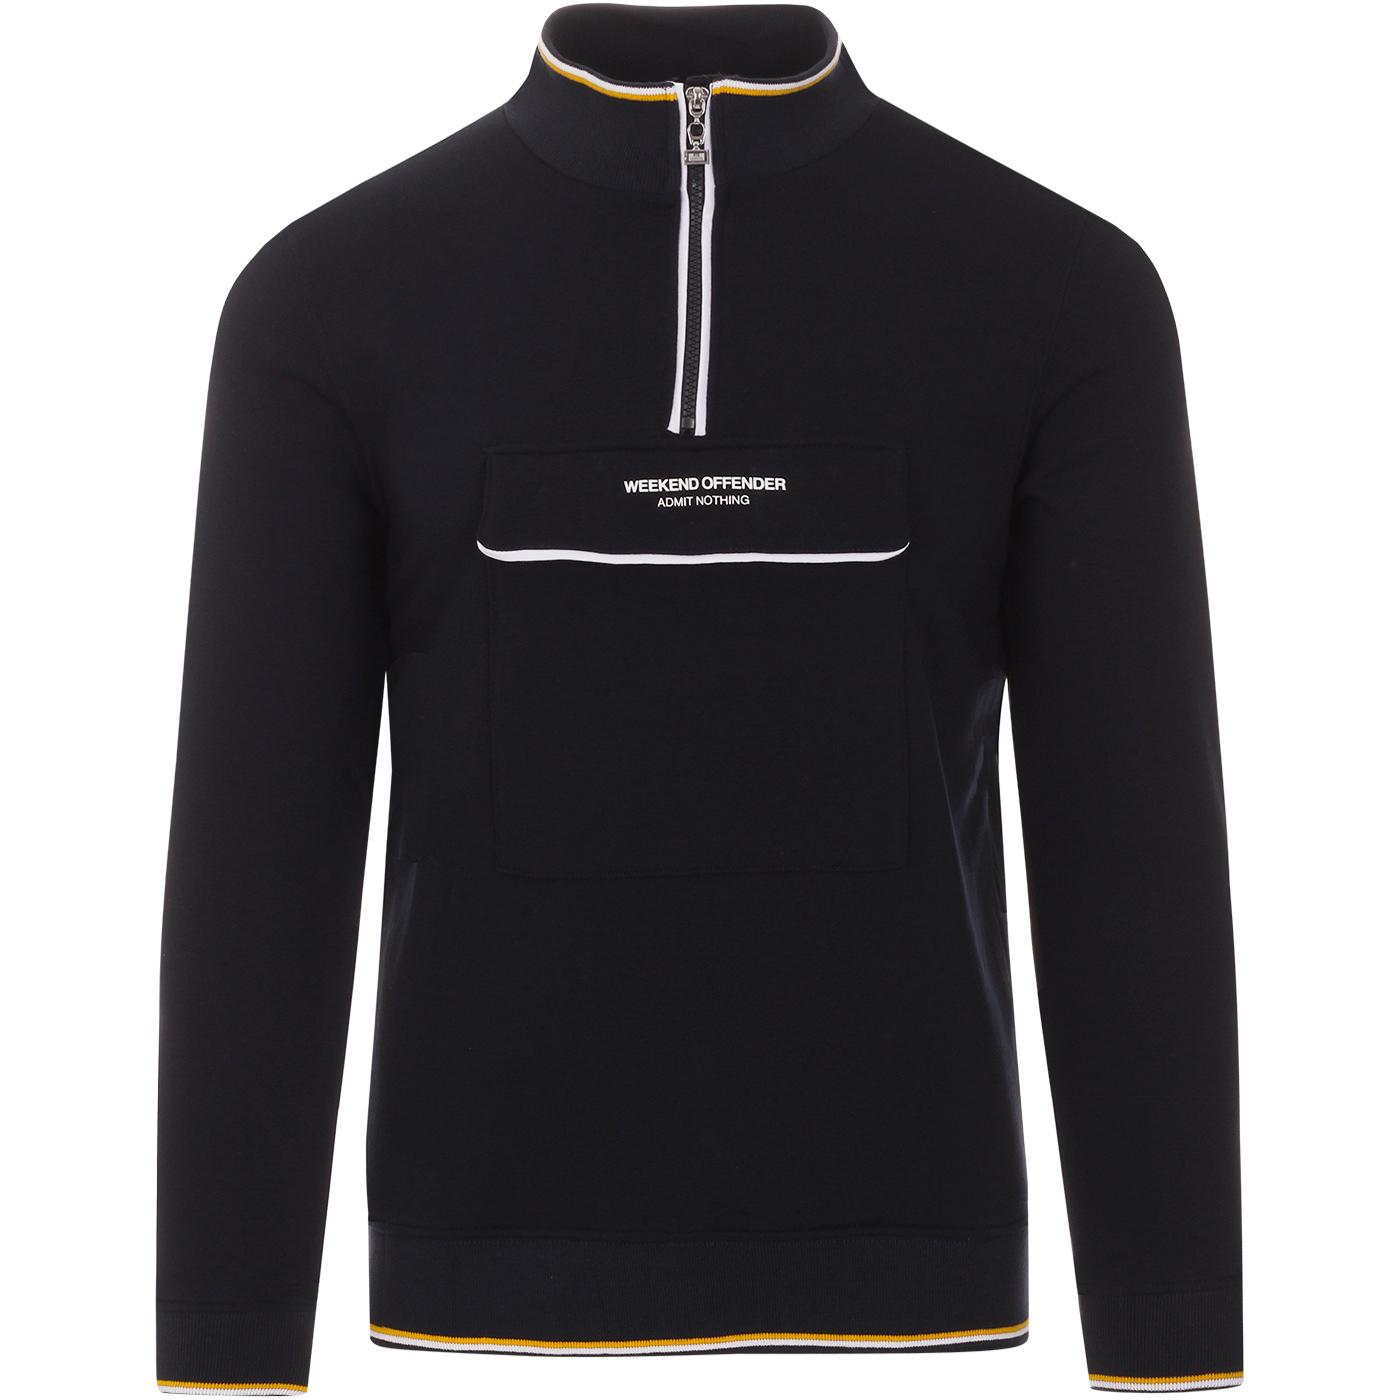 Zocalo WEEKEND OFFENDER Half Zip Sweatshirt (Navy)